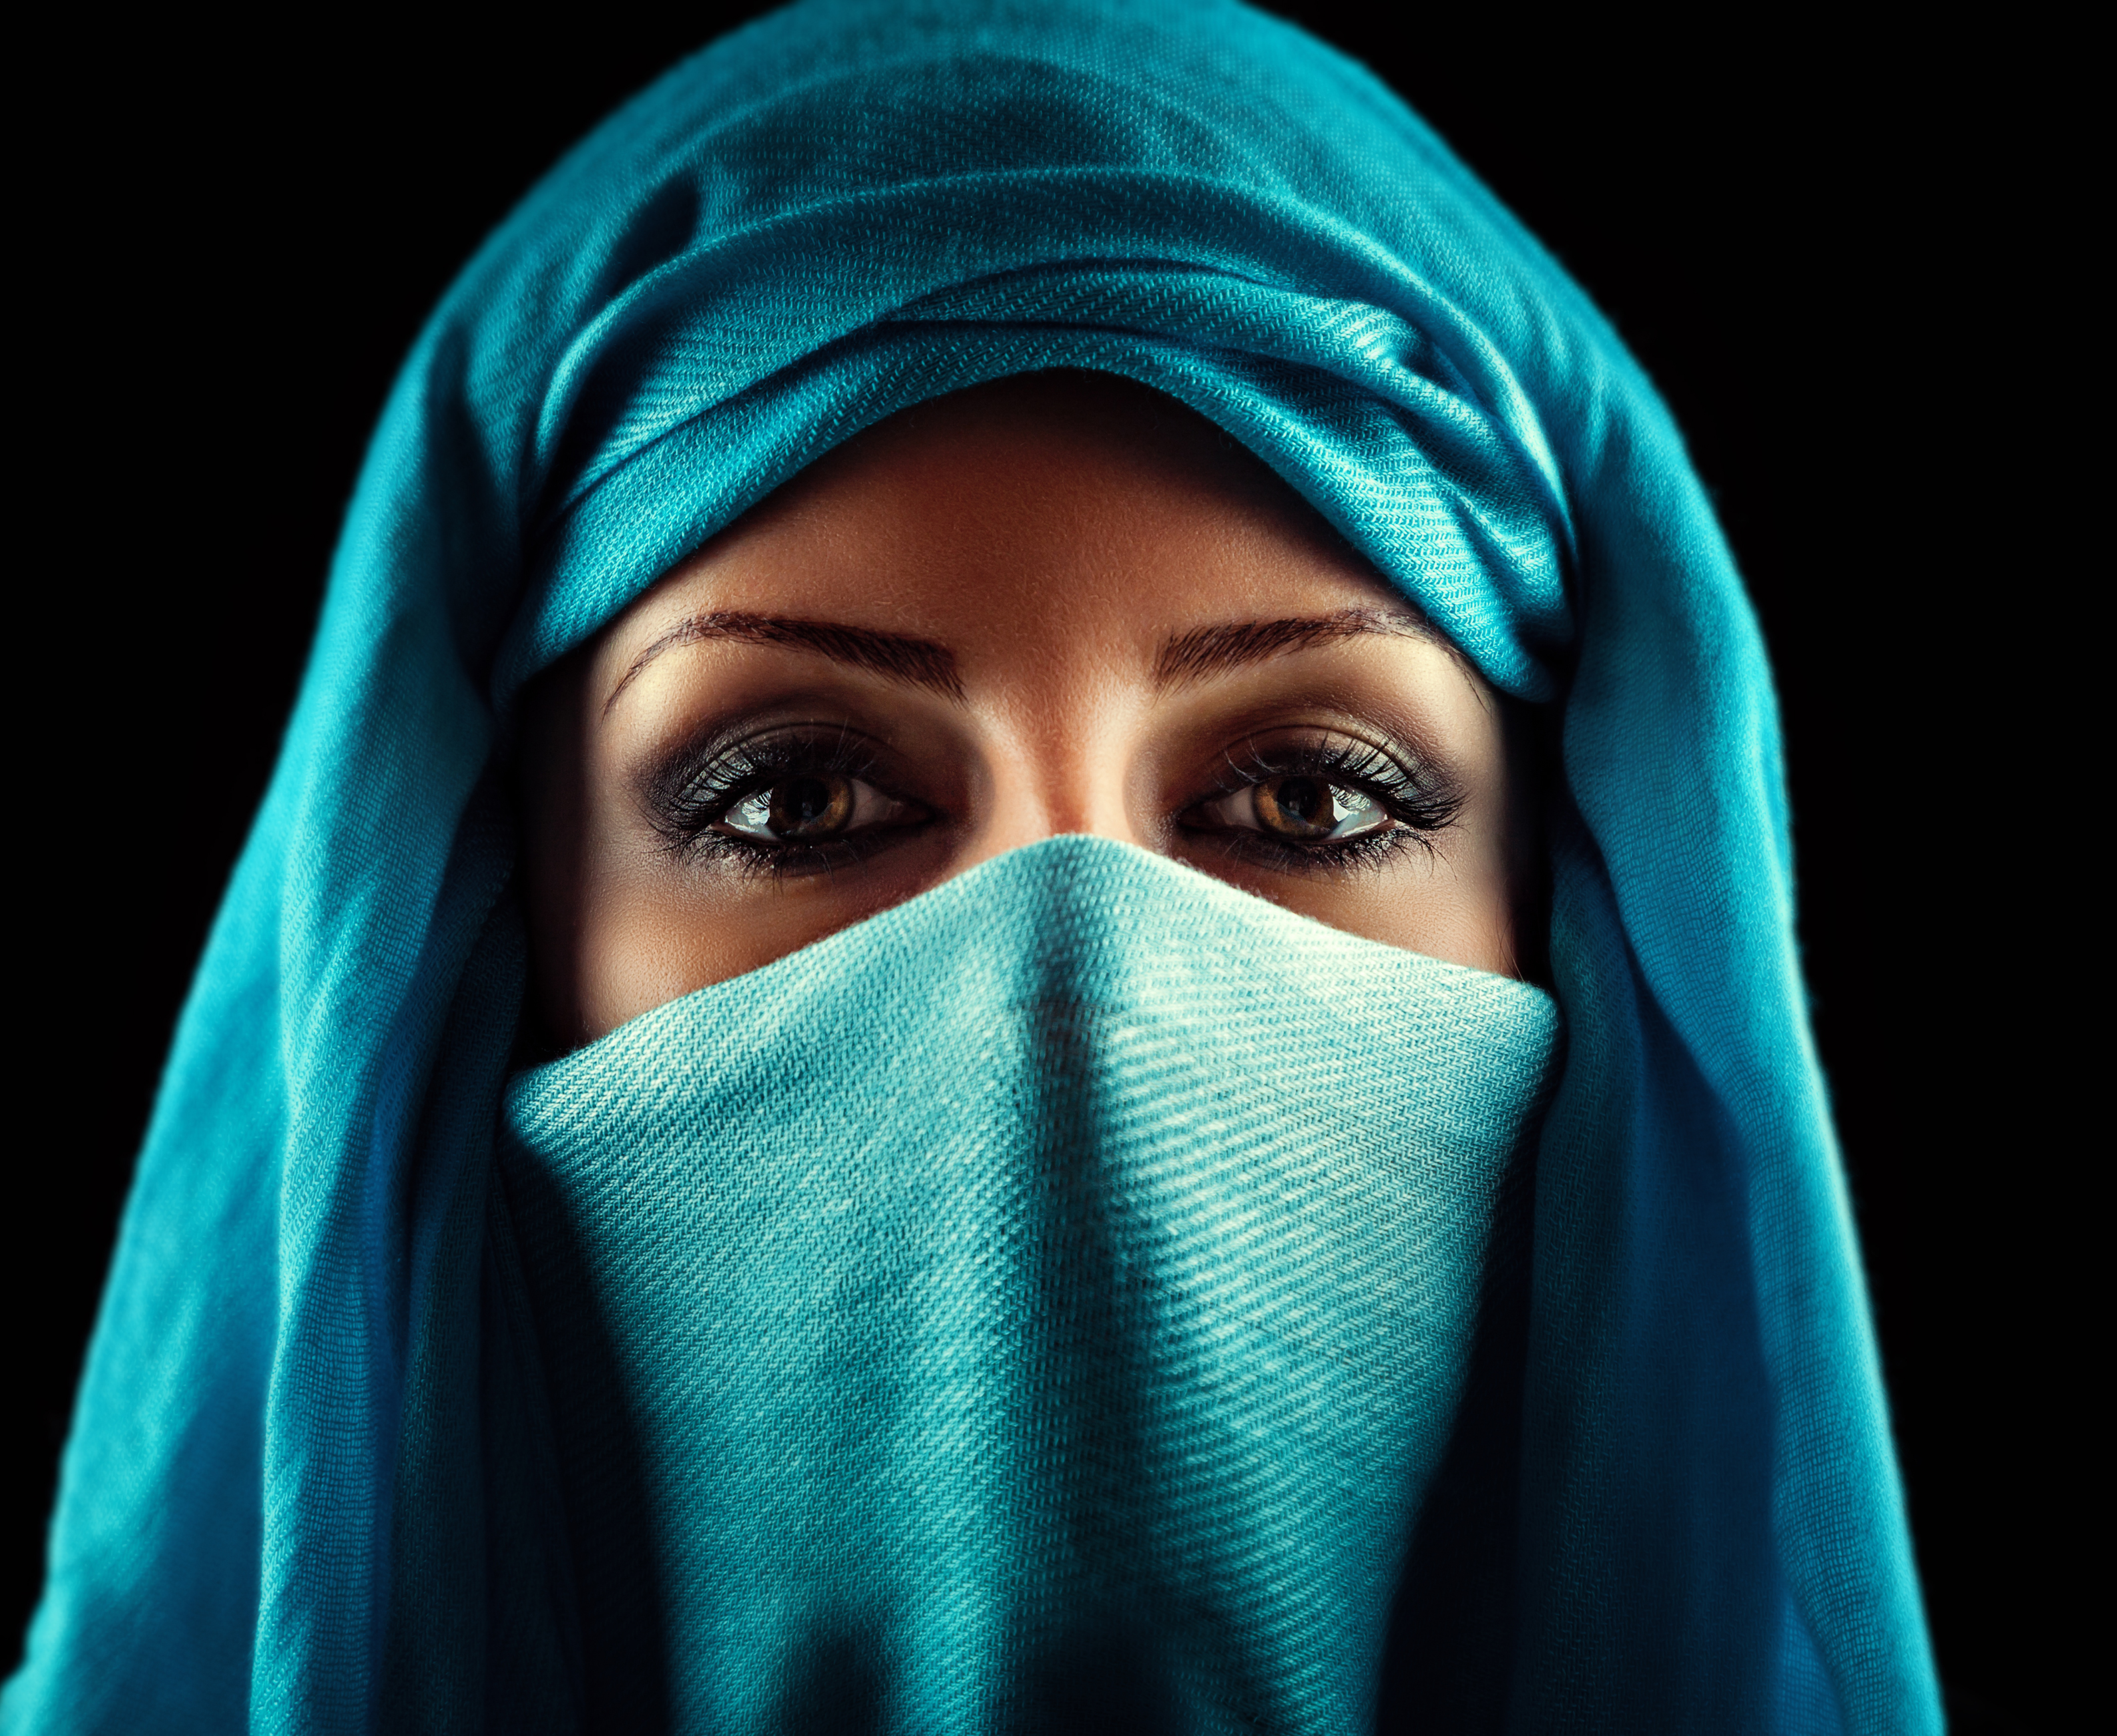 The Hijab Conundrum